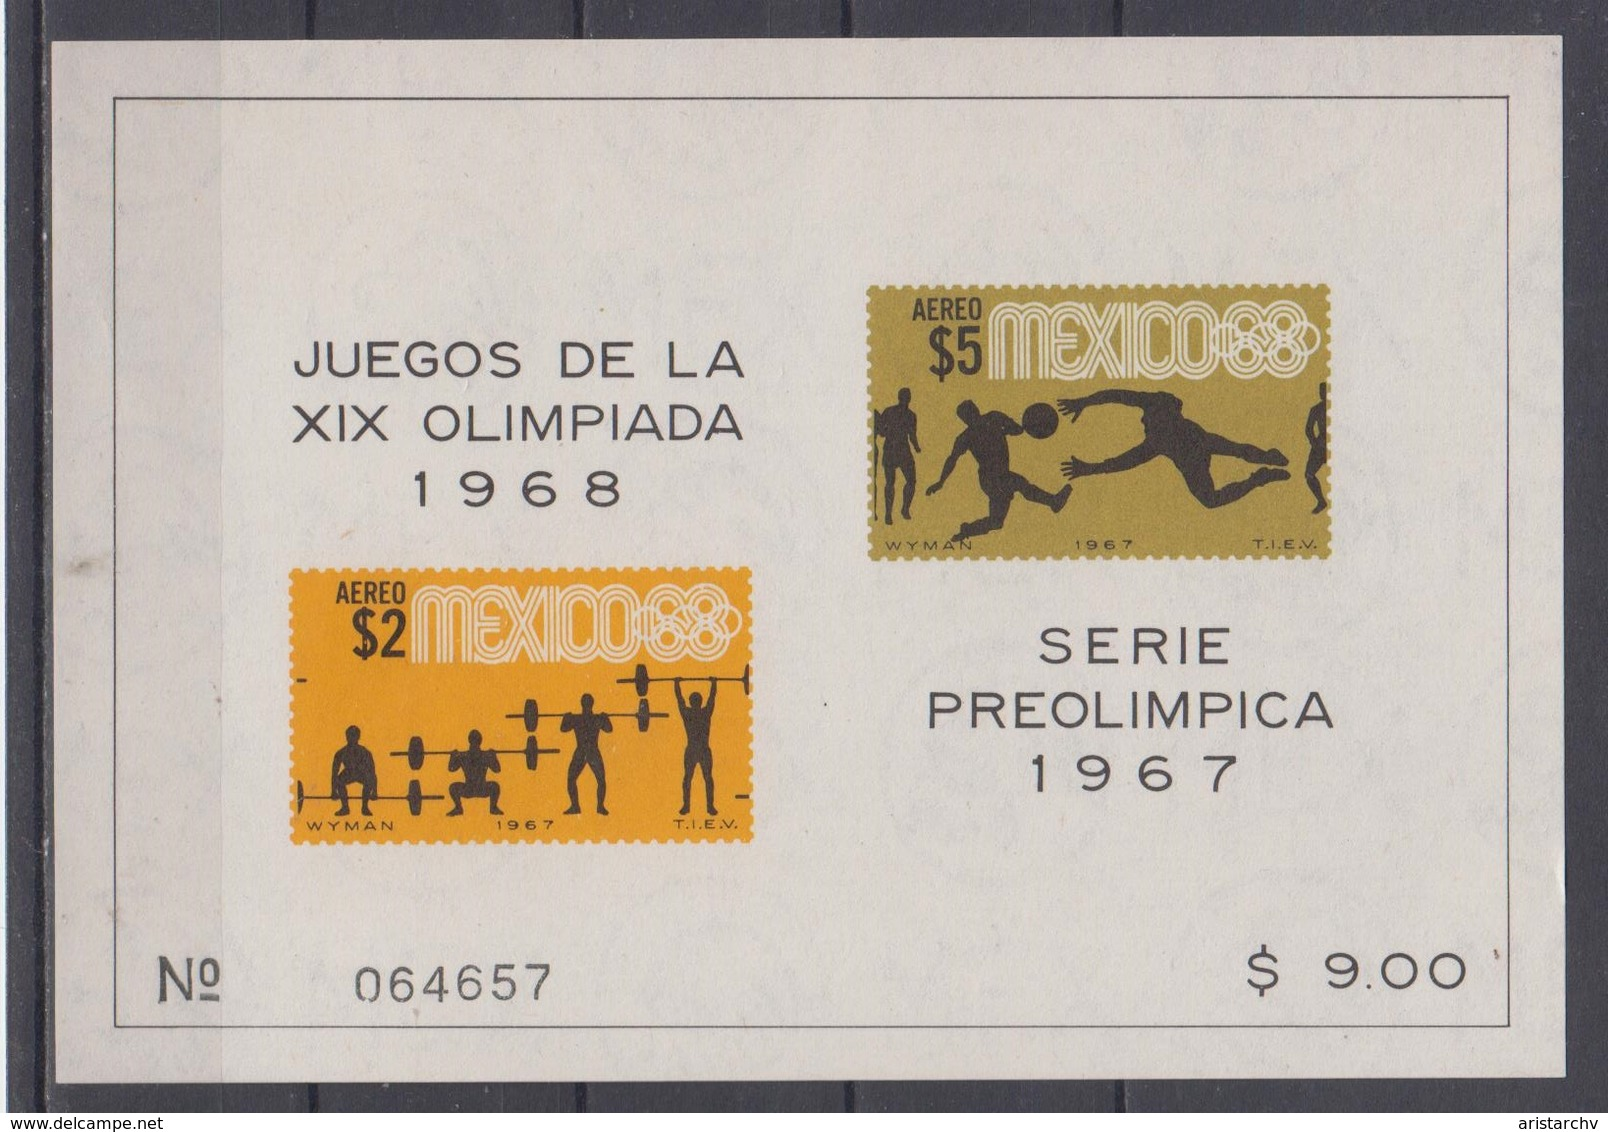 MEXICO 1968 OLYMPIC GAMES FOOTBALL WEIGHTLIFTING S/SHEET - Sommer 1968: Mexico